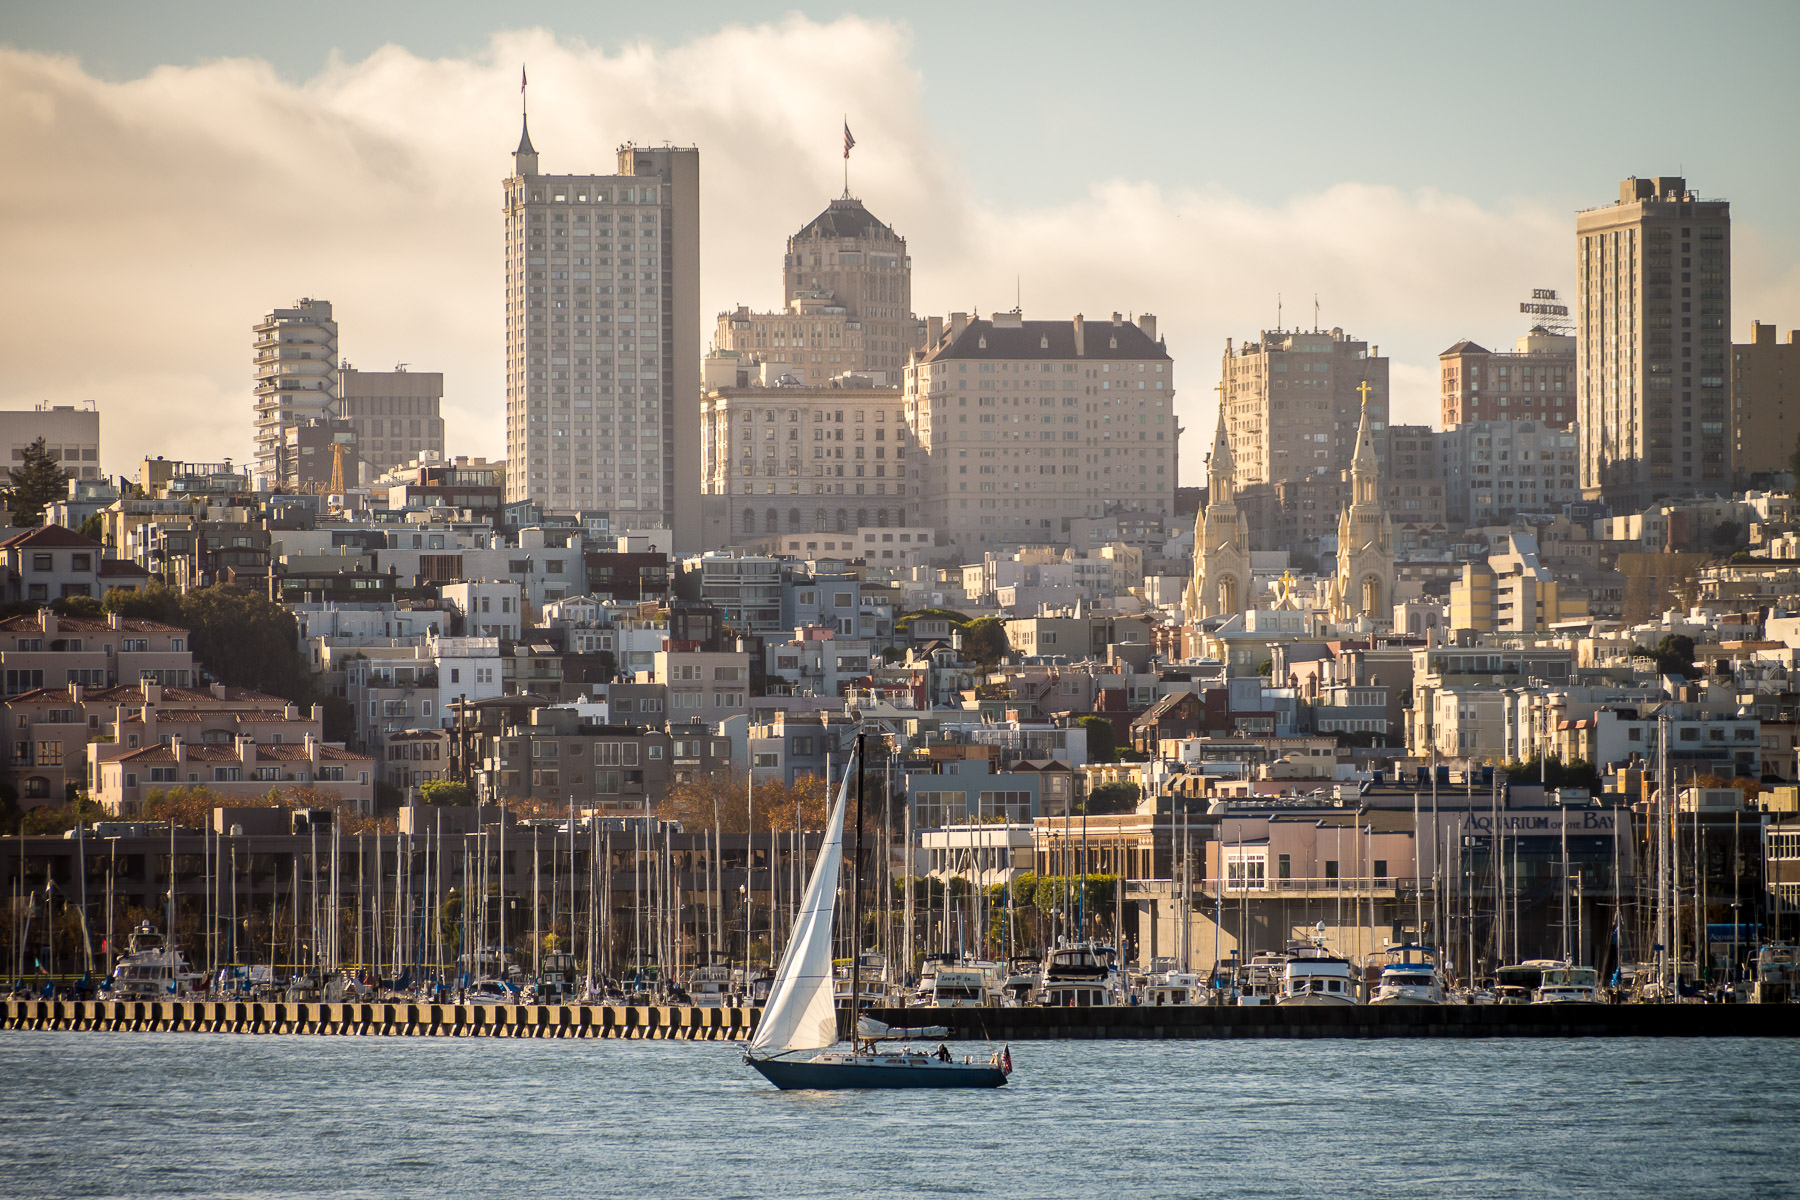 A sailboat cruises San Francisco Bay as the morning sun begins to light up the city.